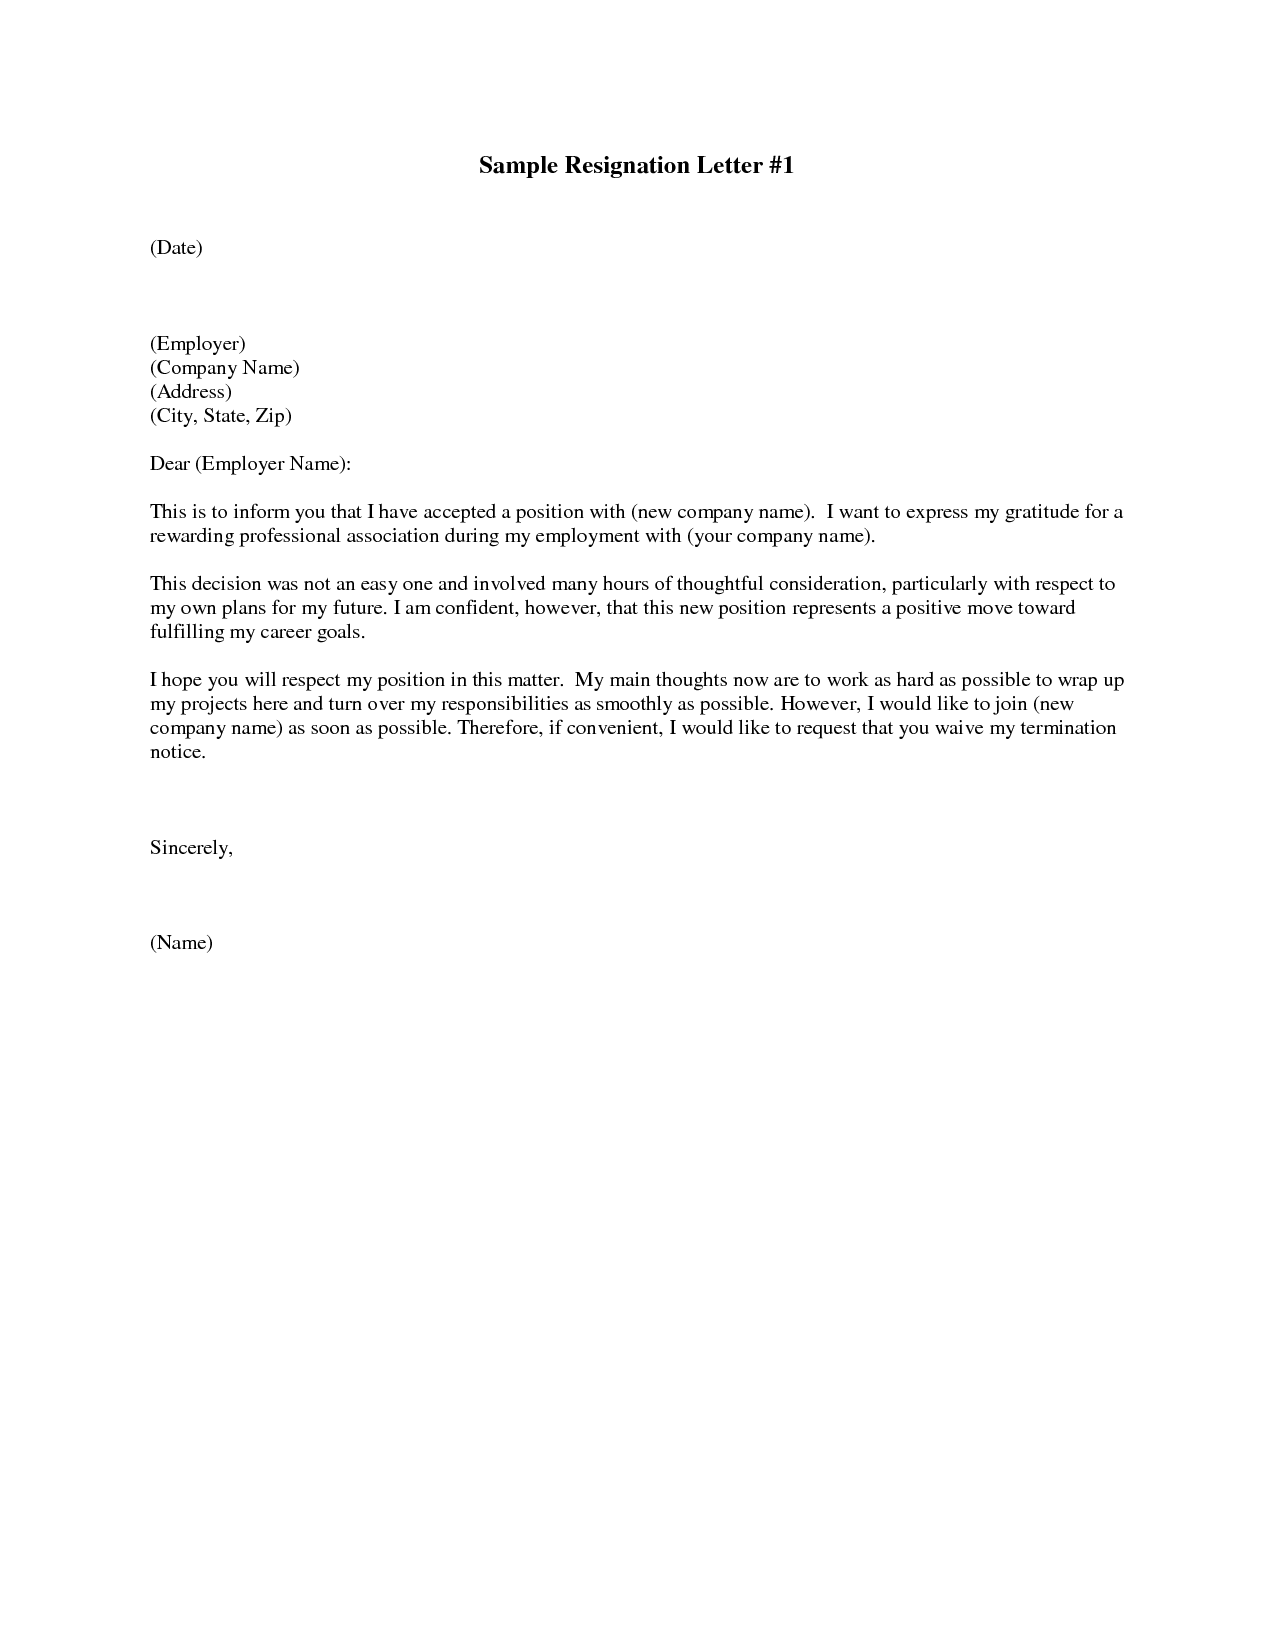 cover letter sample document submission